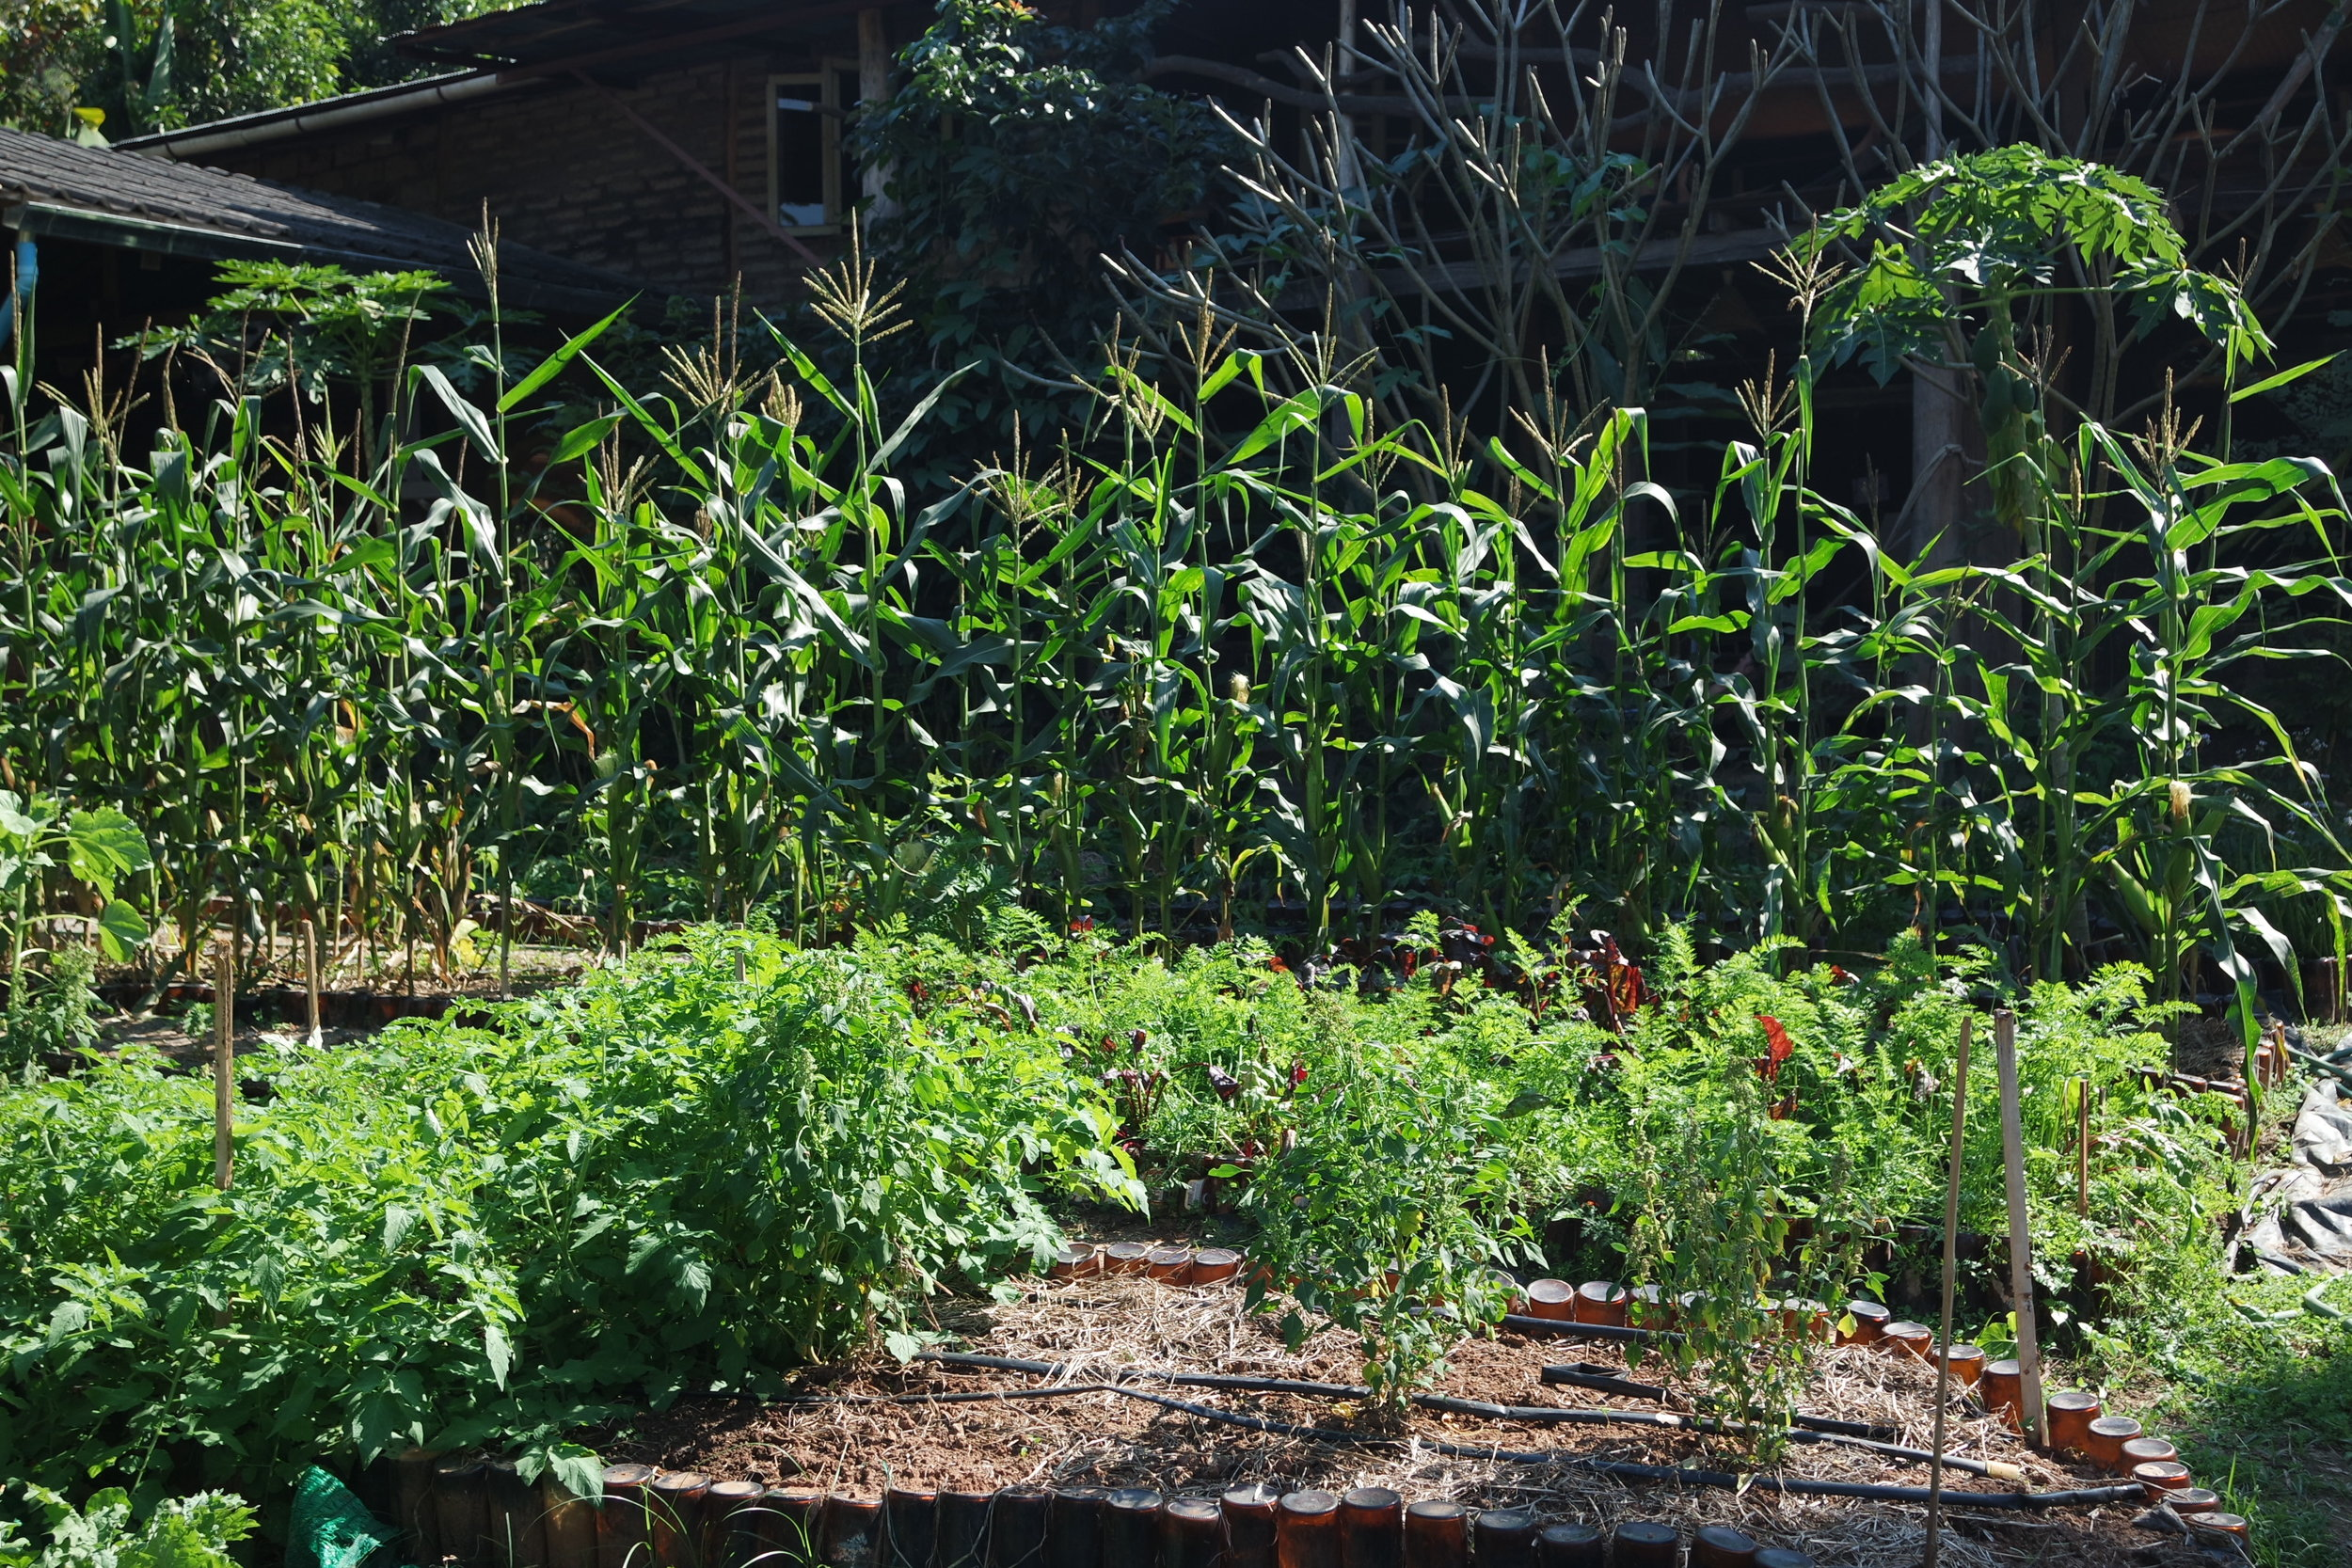 A few rows of corn can protect more sensitive plants from wind.